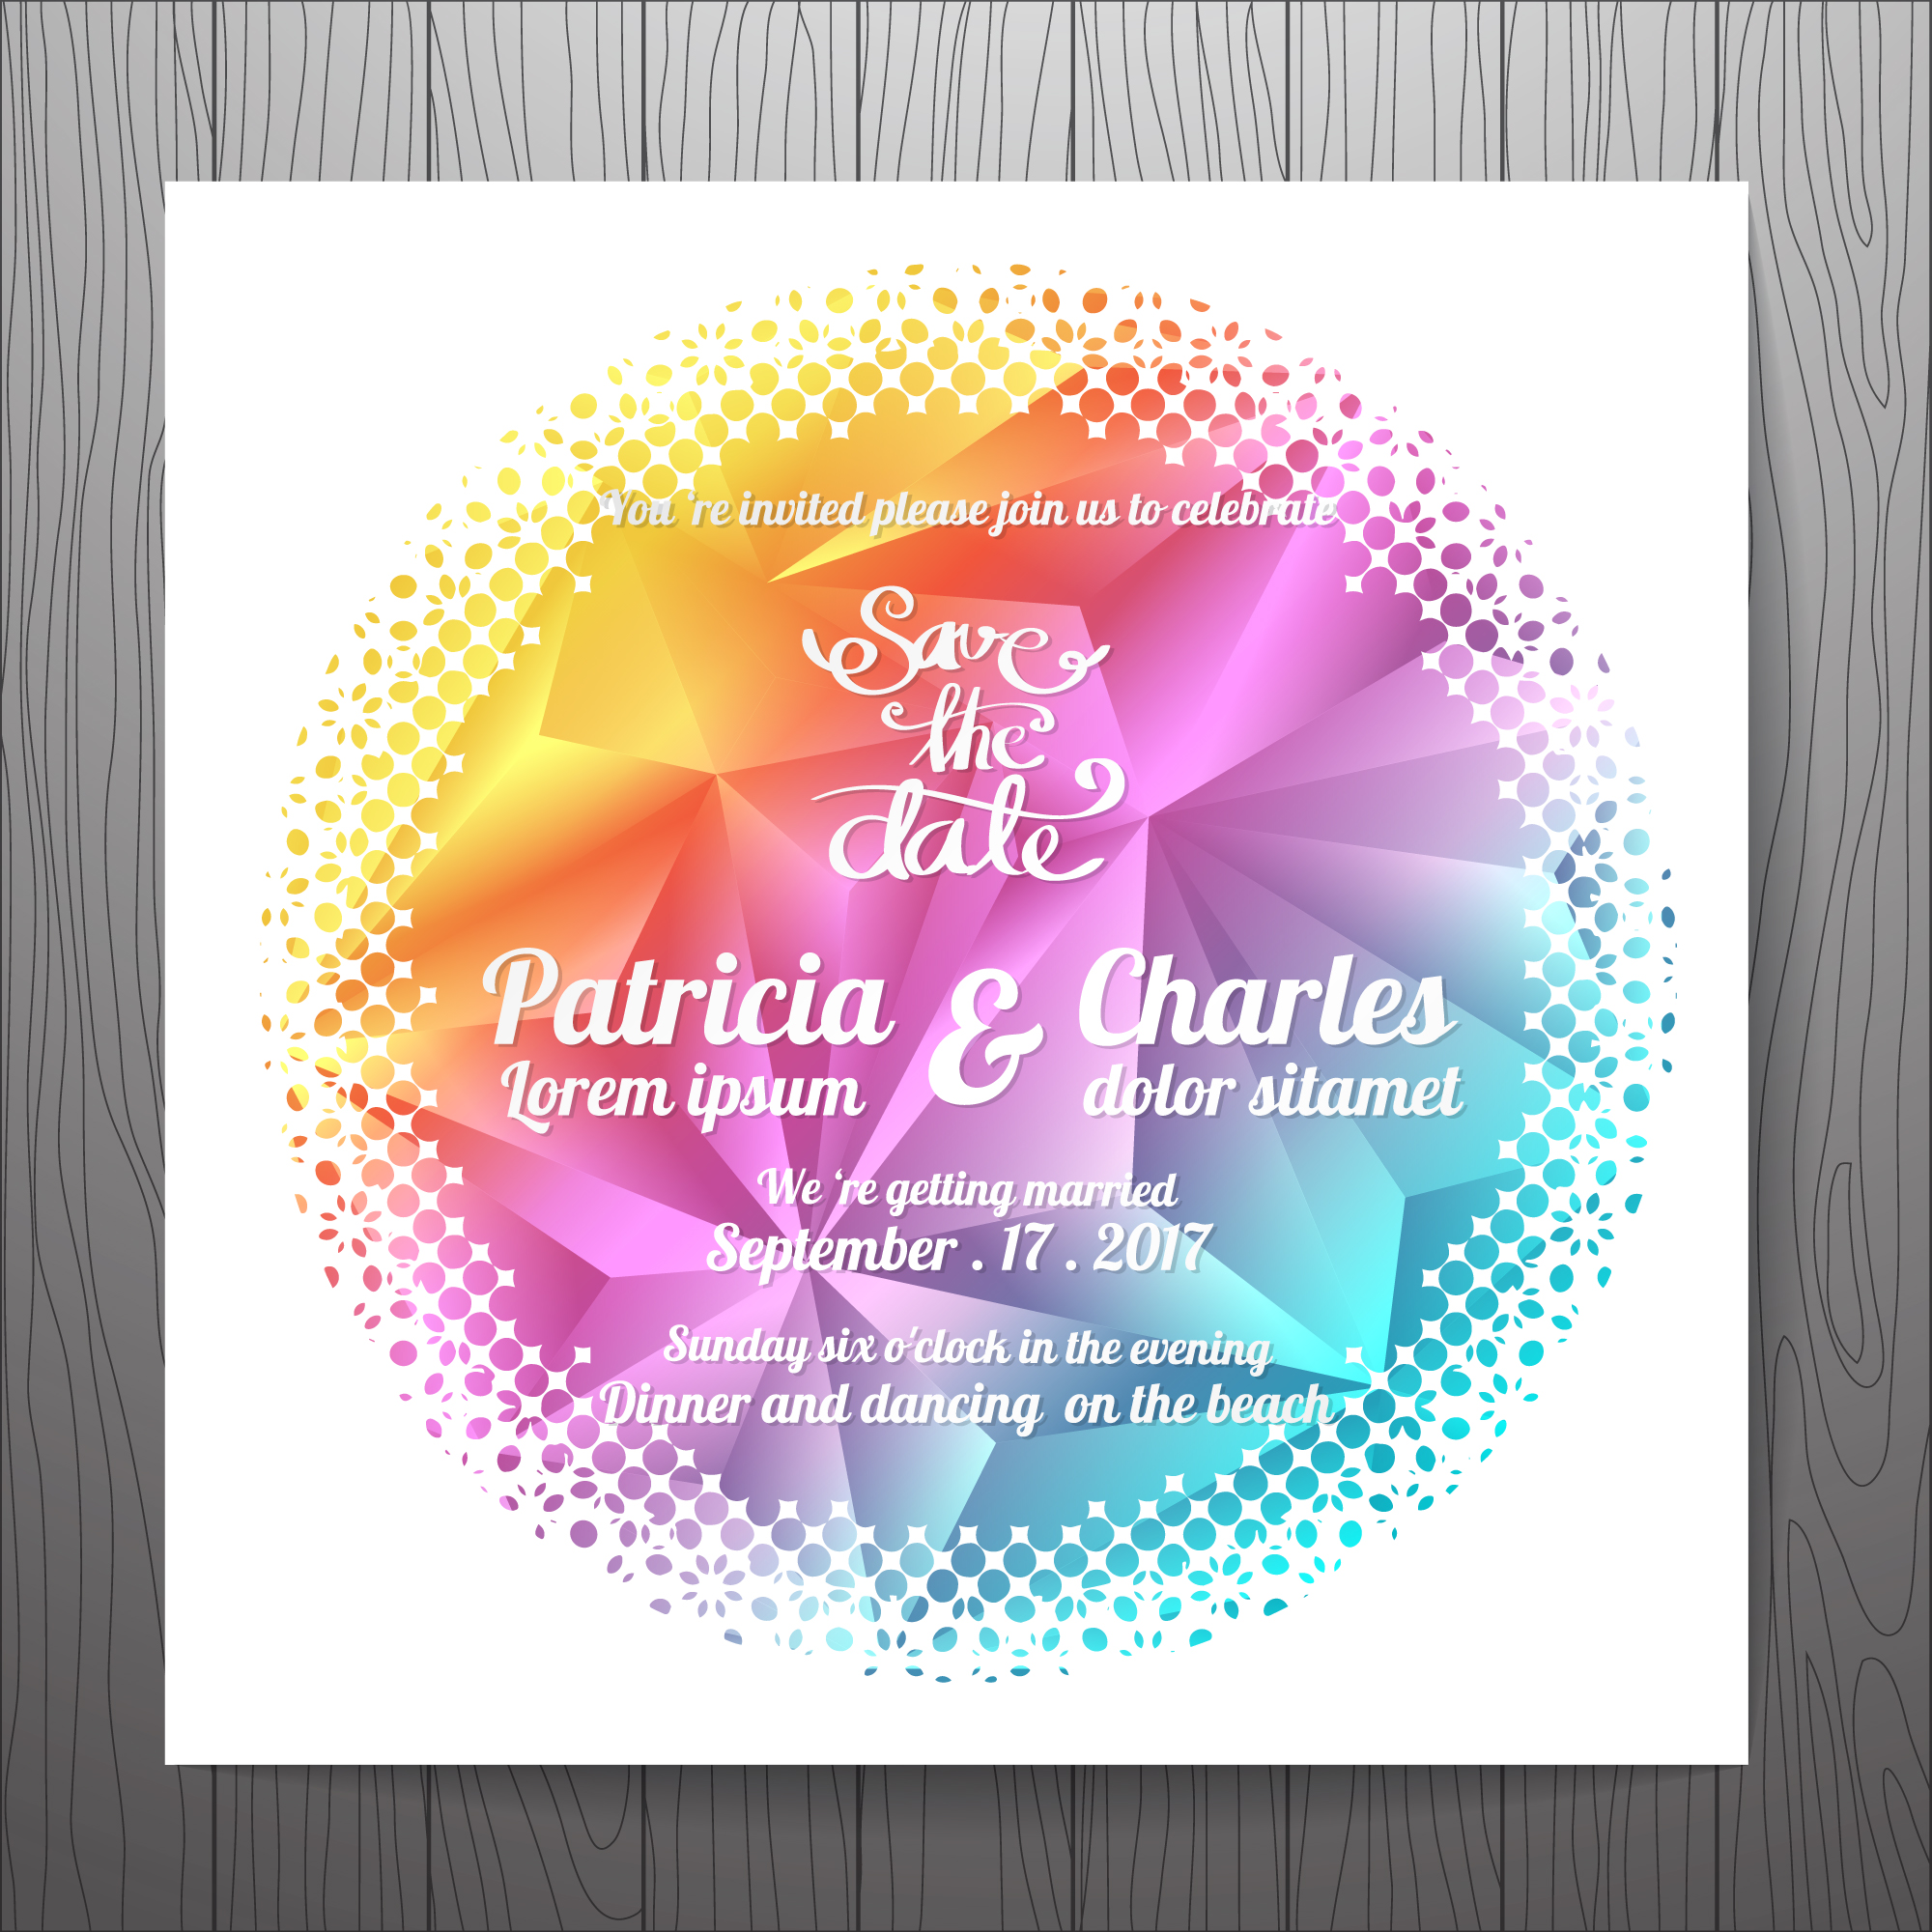 Multicolor wedding invitation with rounded shape